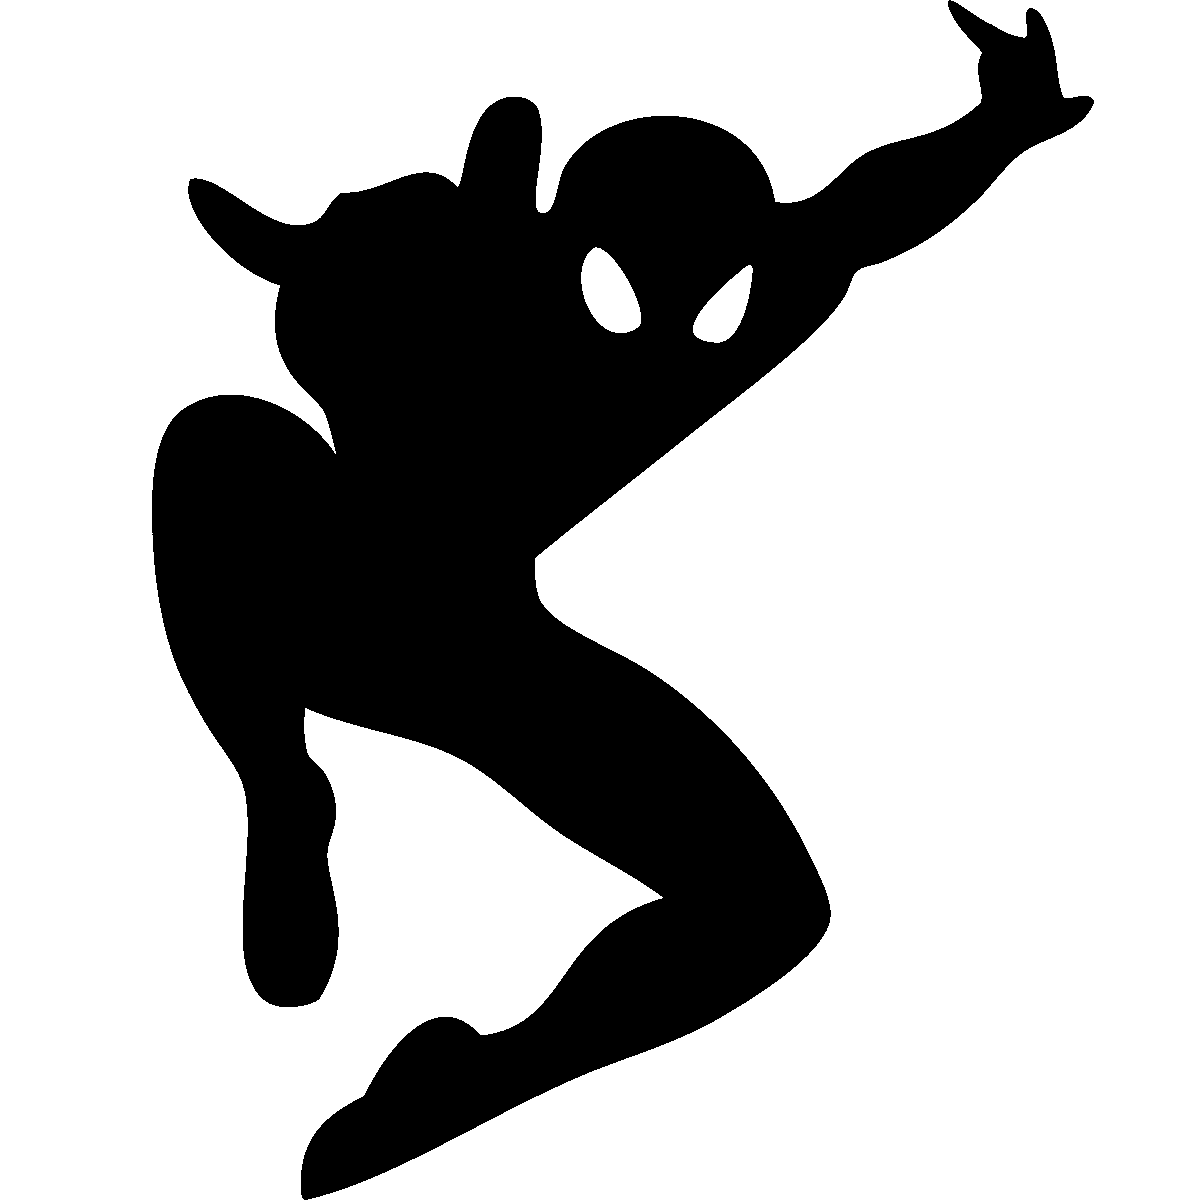 clip art stock spiderman shape